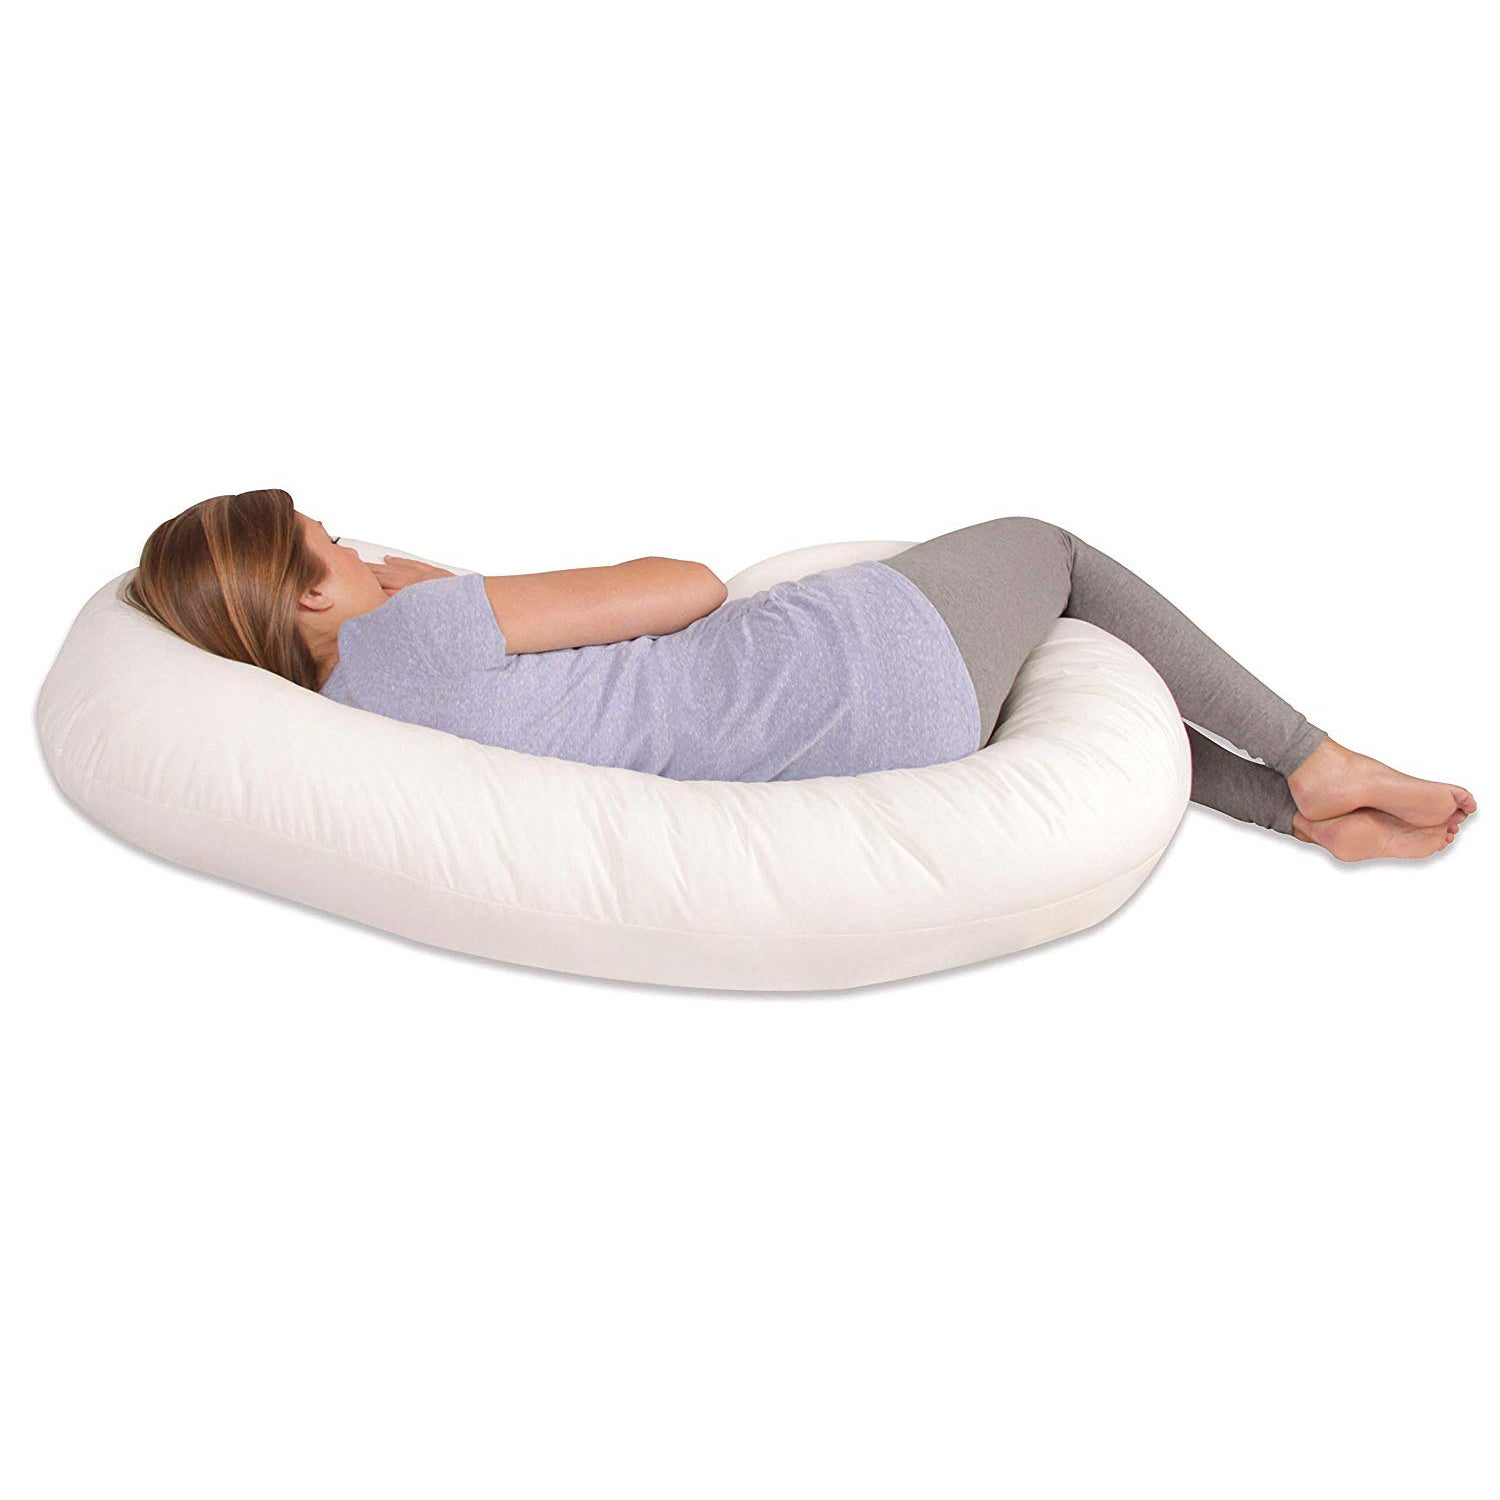 snuggling positions chest pillow - HD 1500×1500